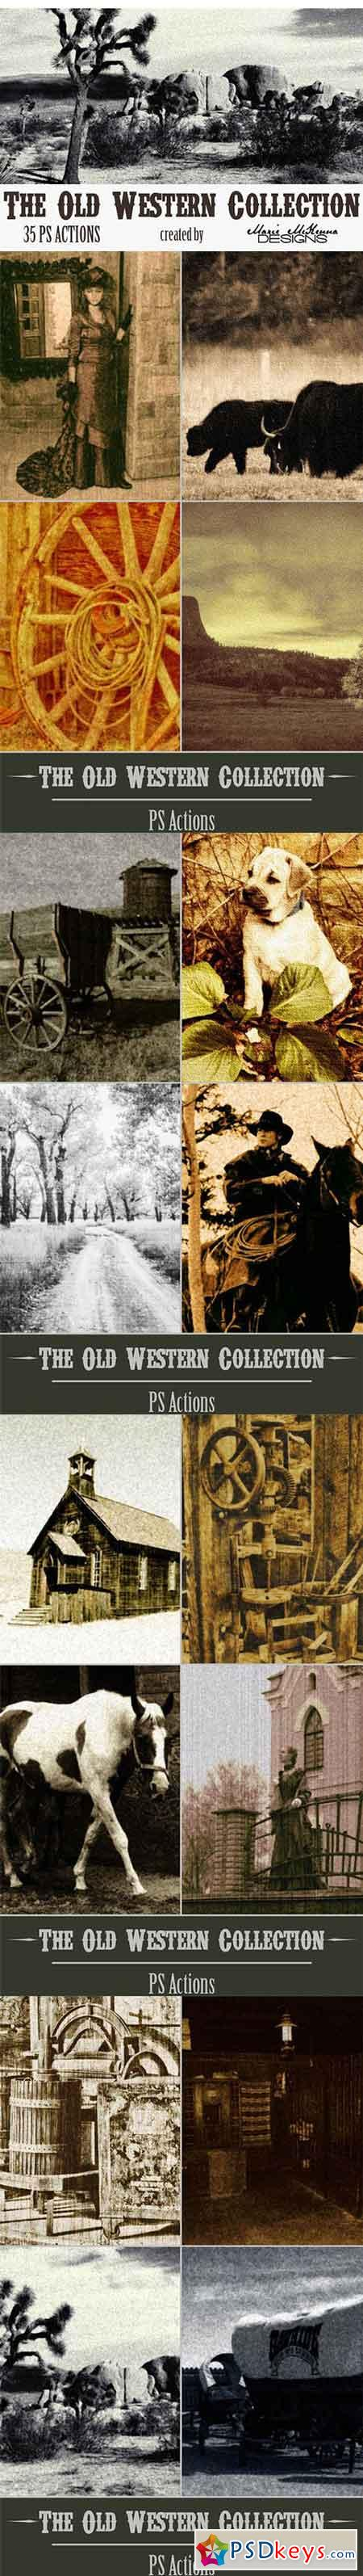 The Old Western Collection Actions 2712122